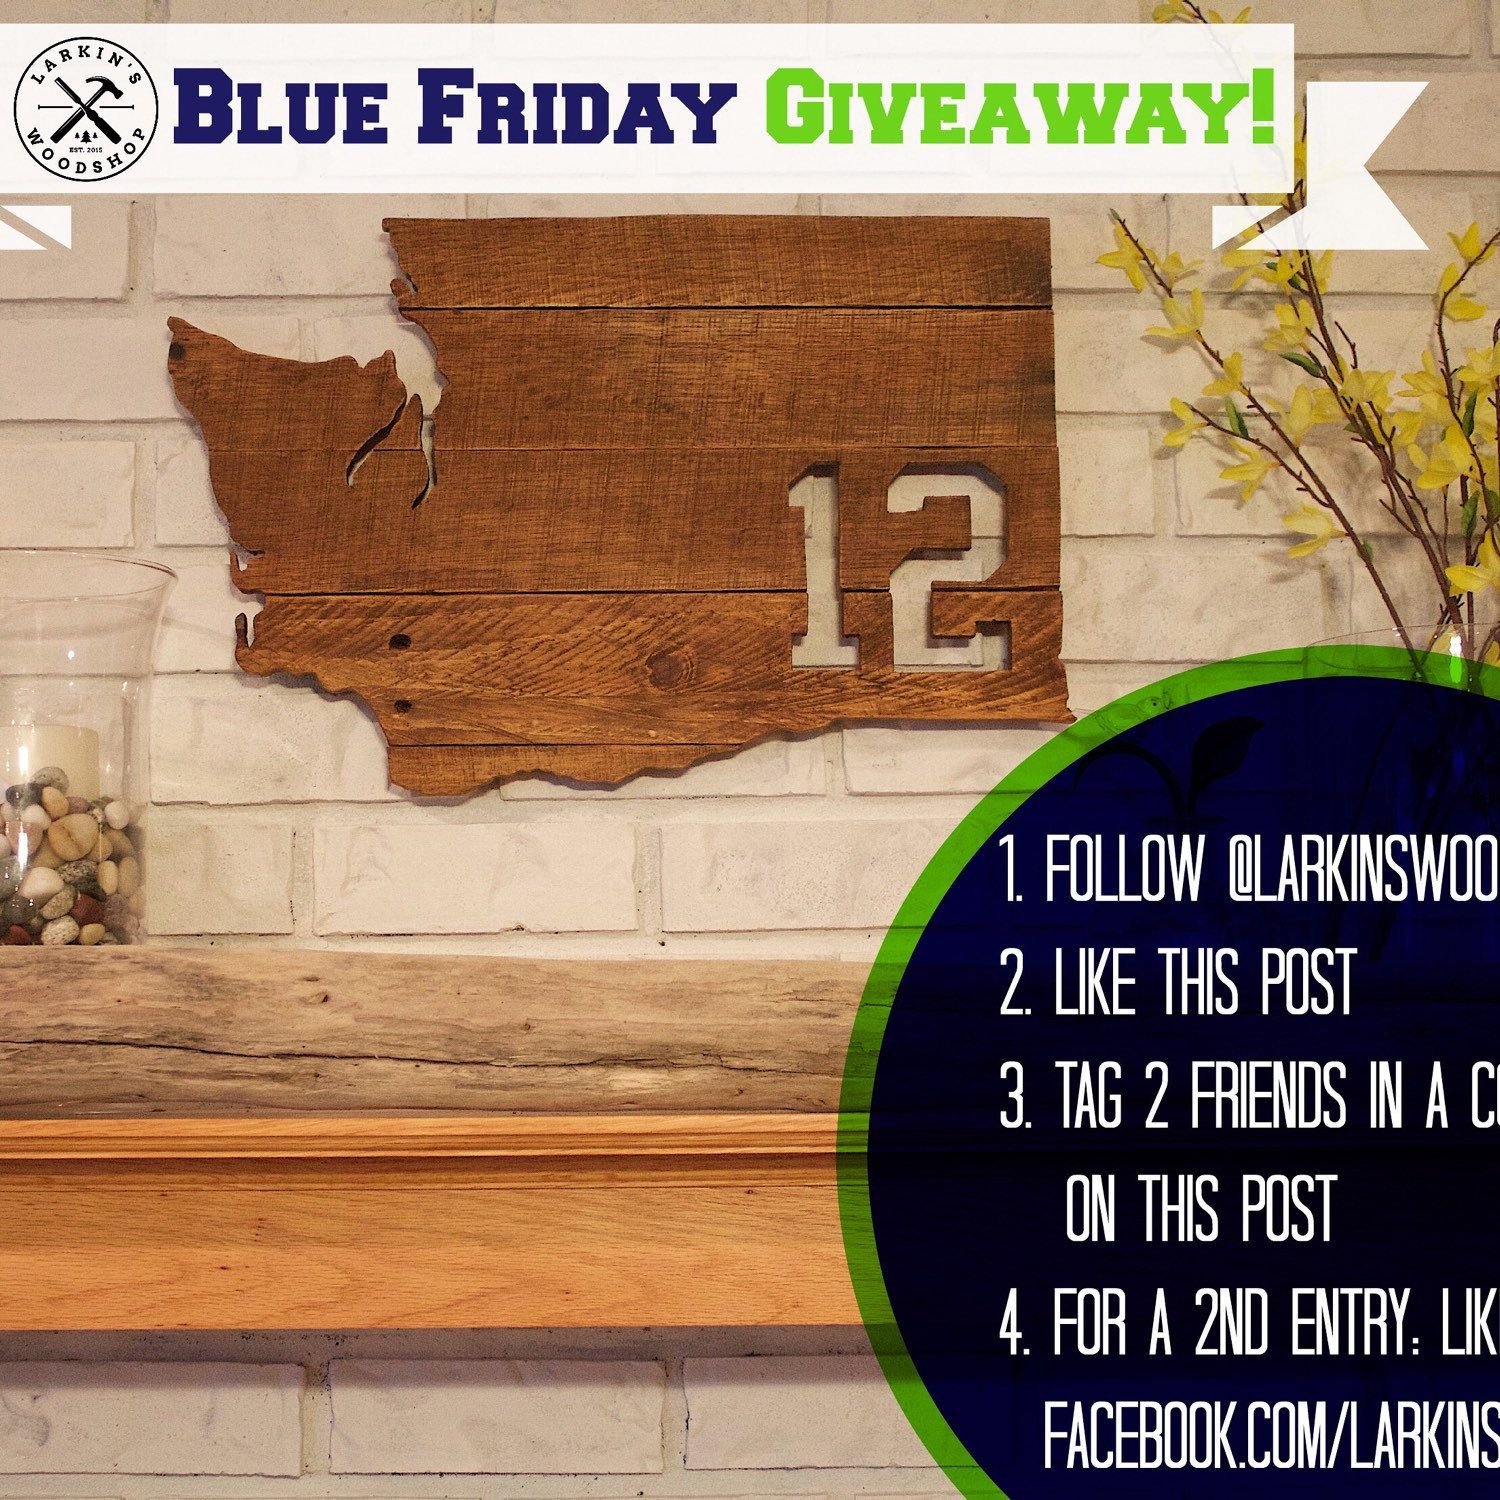 We're having a giveaway on Instagram! Check it out to win our 12th Man sign!